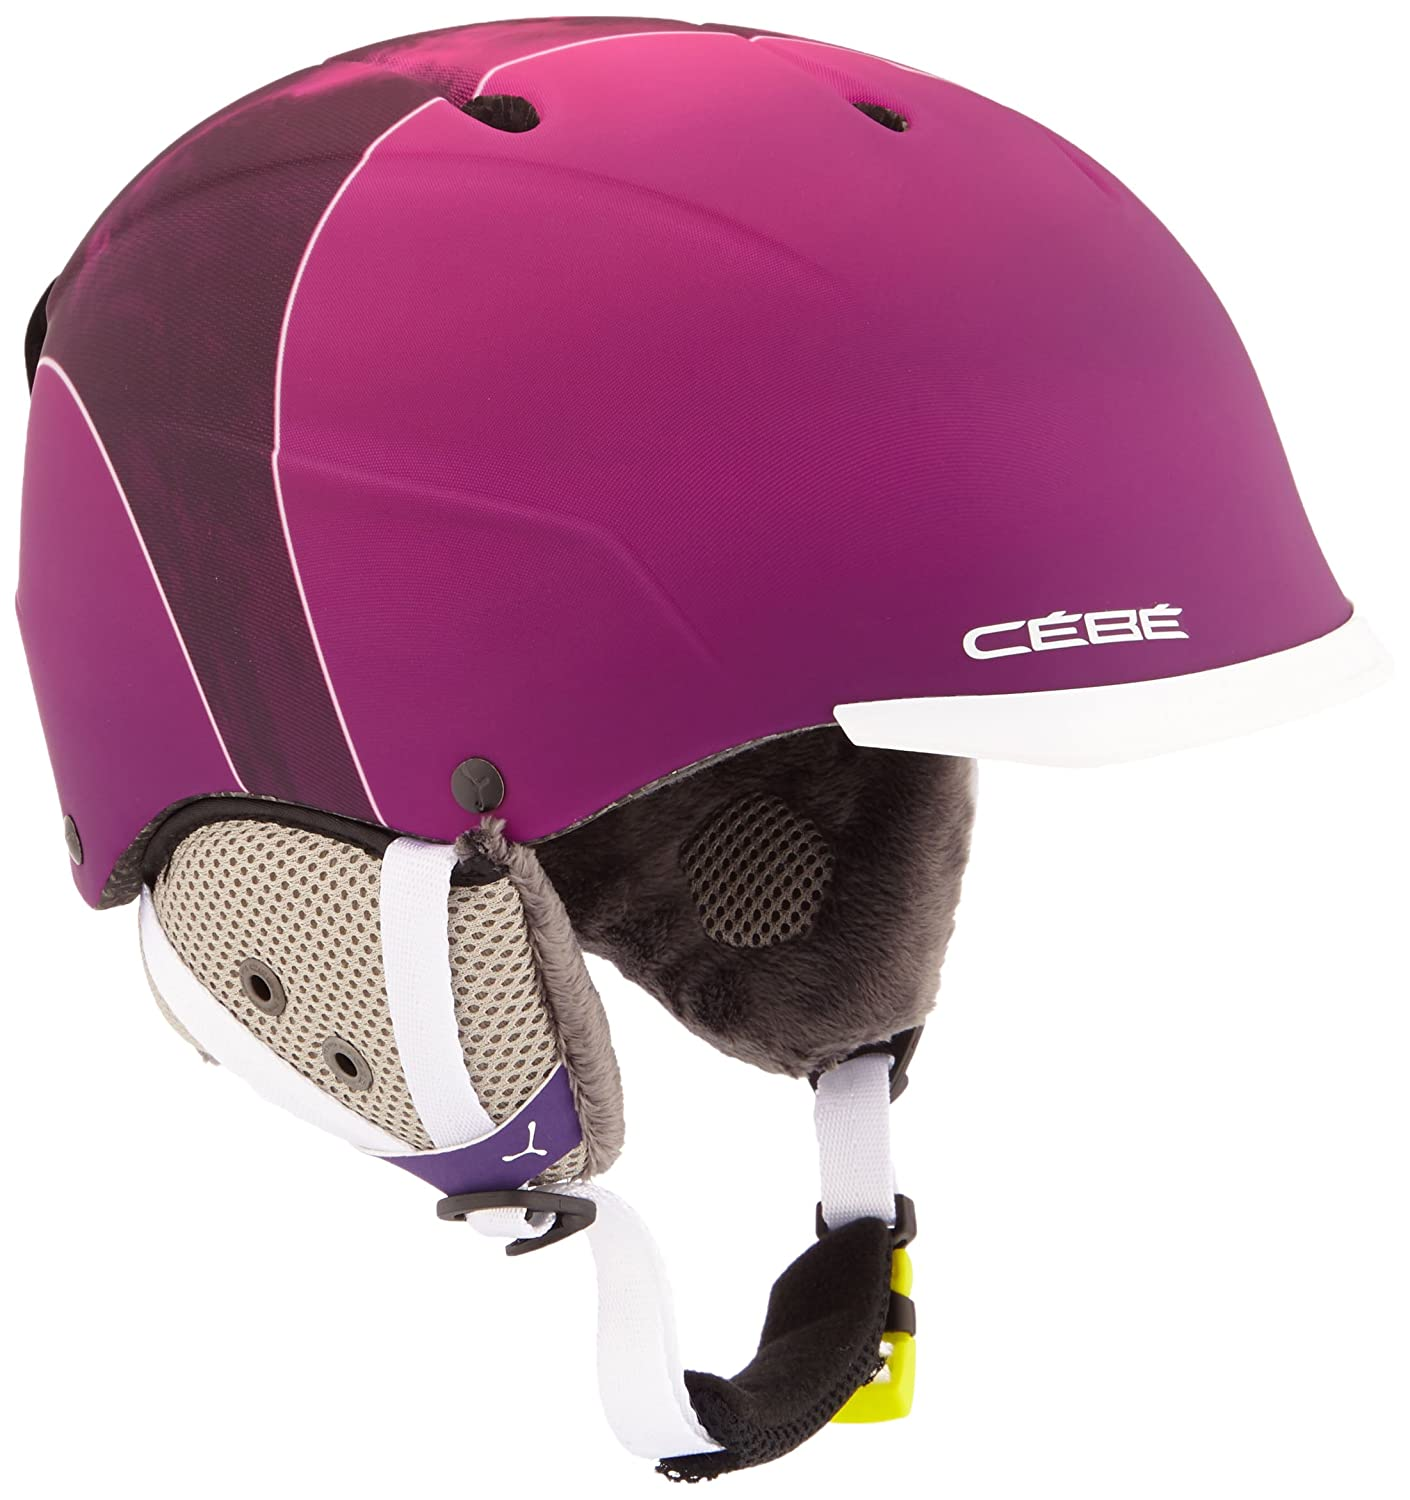 latest design factory outlets new styles Amazon.com : Cebe CBH159 Contest Visor Pro Pink Mountain Ski ...